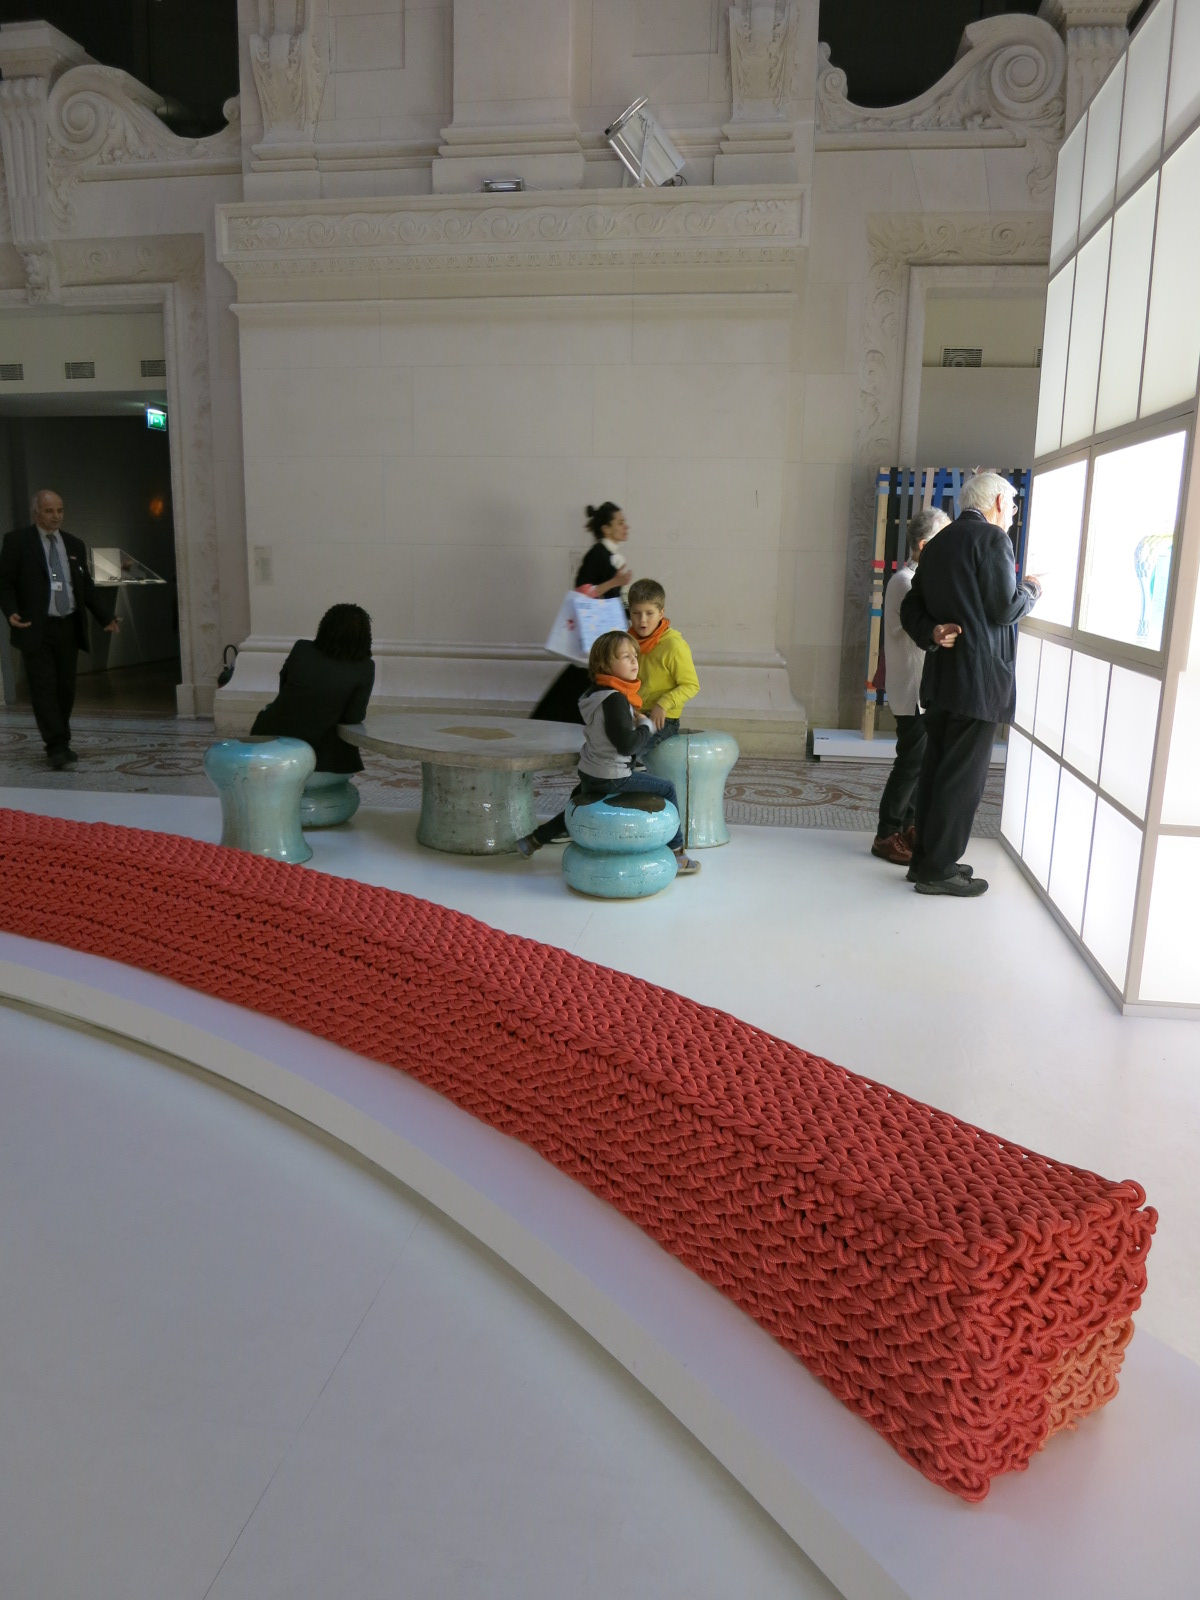 Musee des Art Decoratifs, Paris. 'Korea Now' exhibition 2015. The knitted curved seat was designed by Lee Kwang-ho.